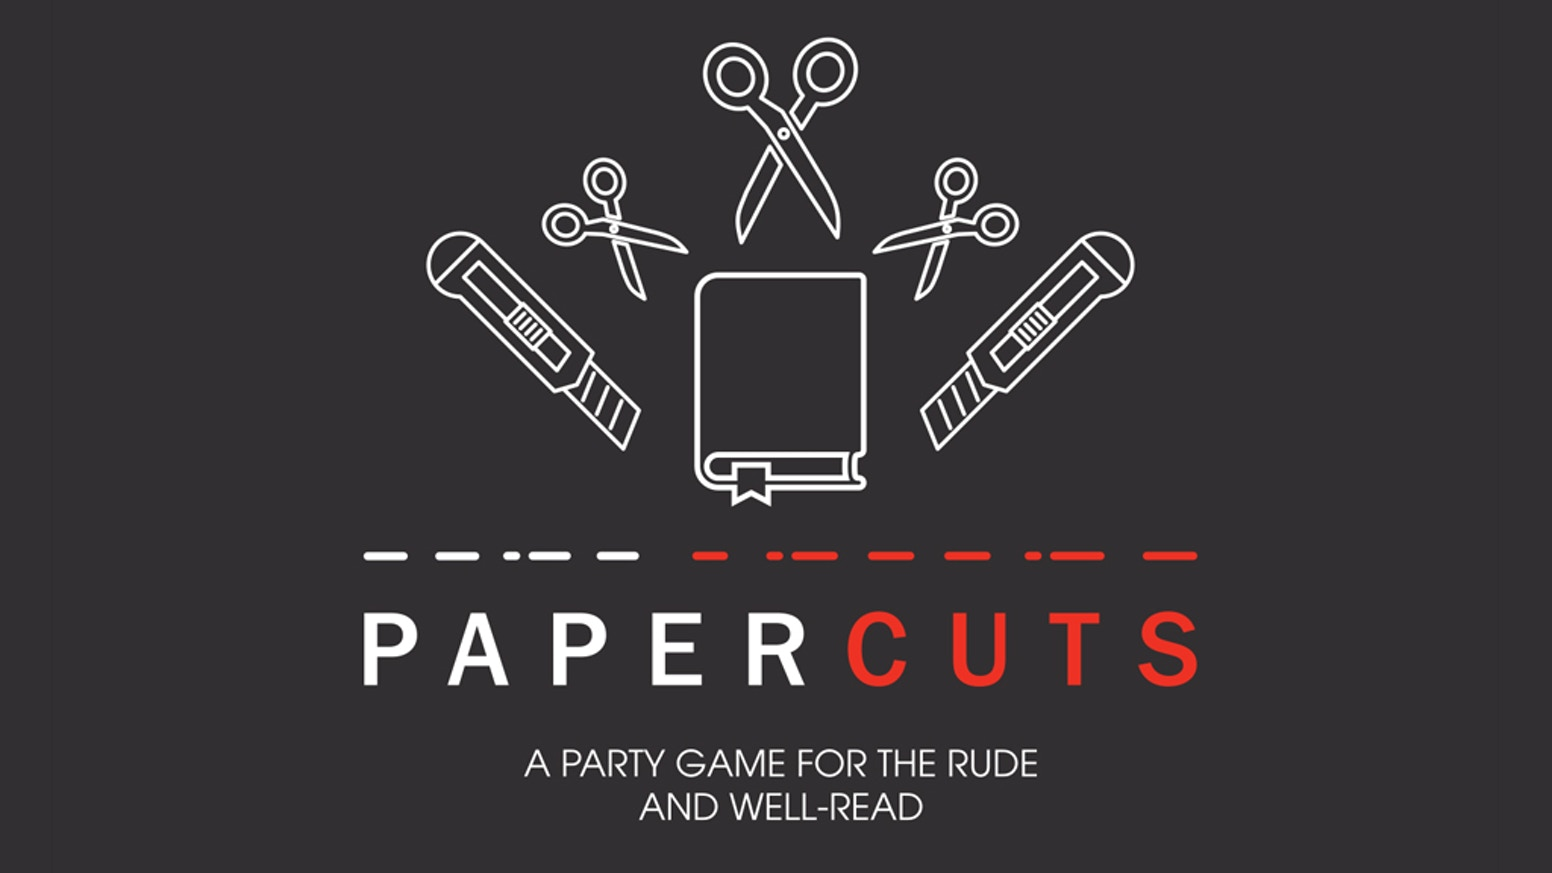 Papercuts is a rowdy card game about books and writing brought to you by Electric Literature.